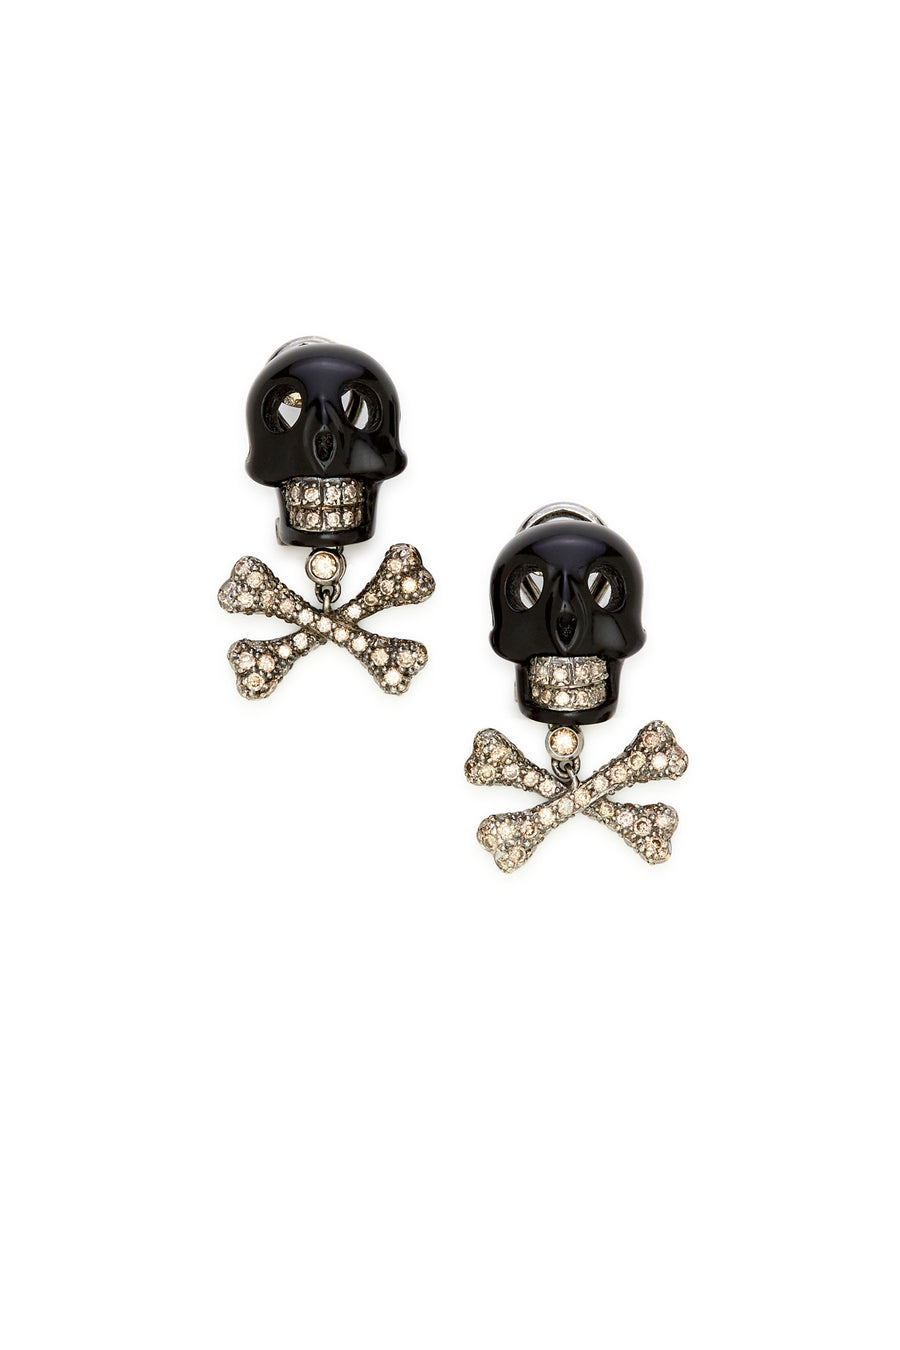 18K White Gold and Black Agate Skull with Diamonds Earrings